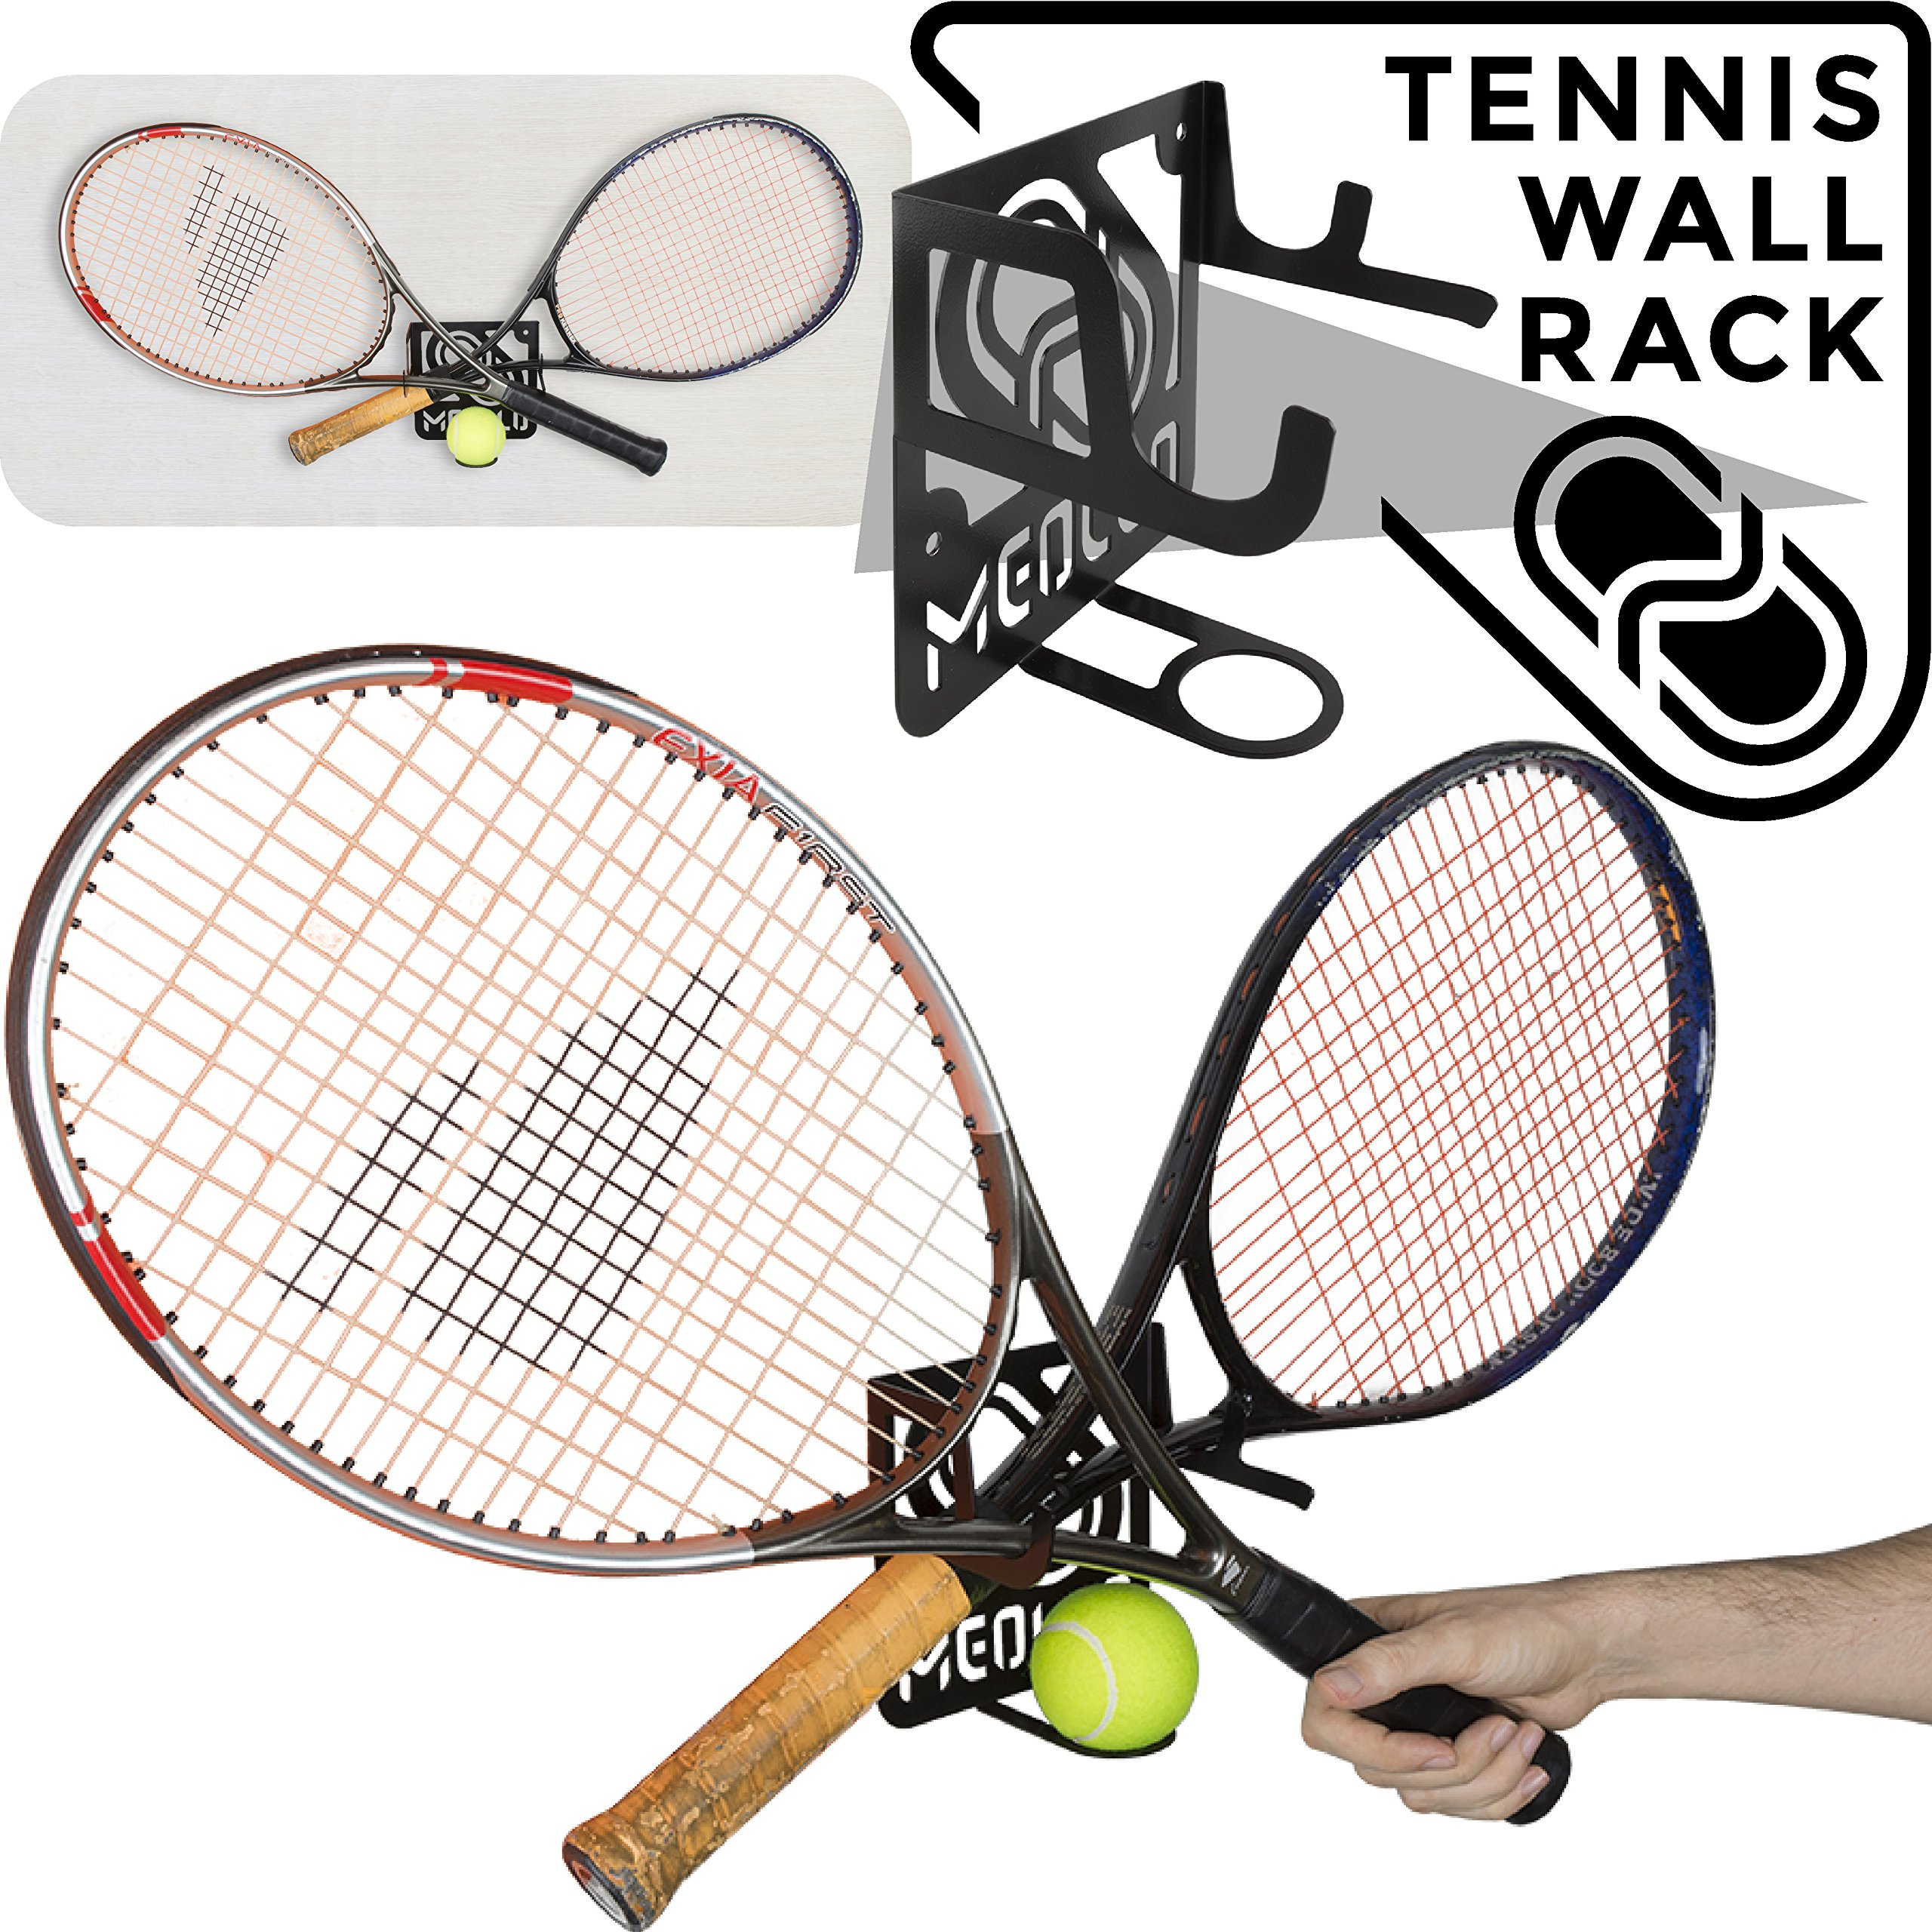 MEOLLO Tennis Racket Storage Rack Wall Mount (100% Steel)